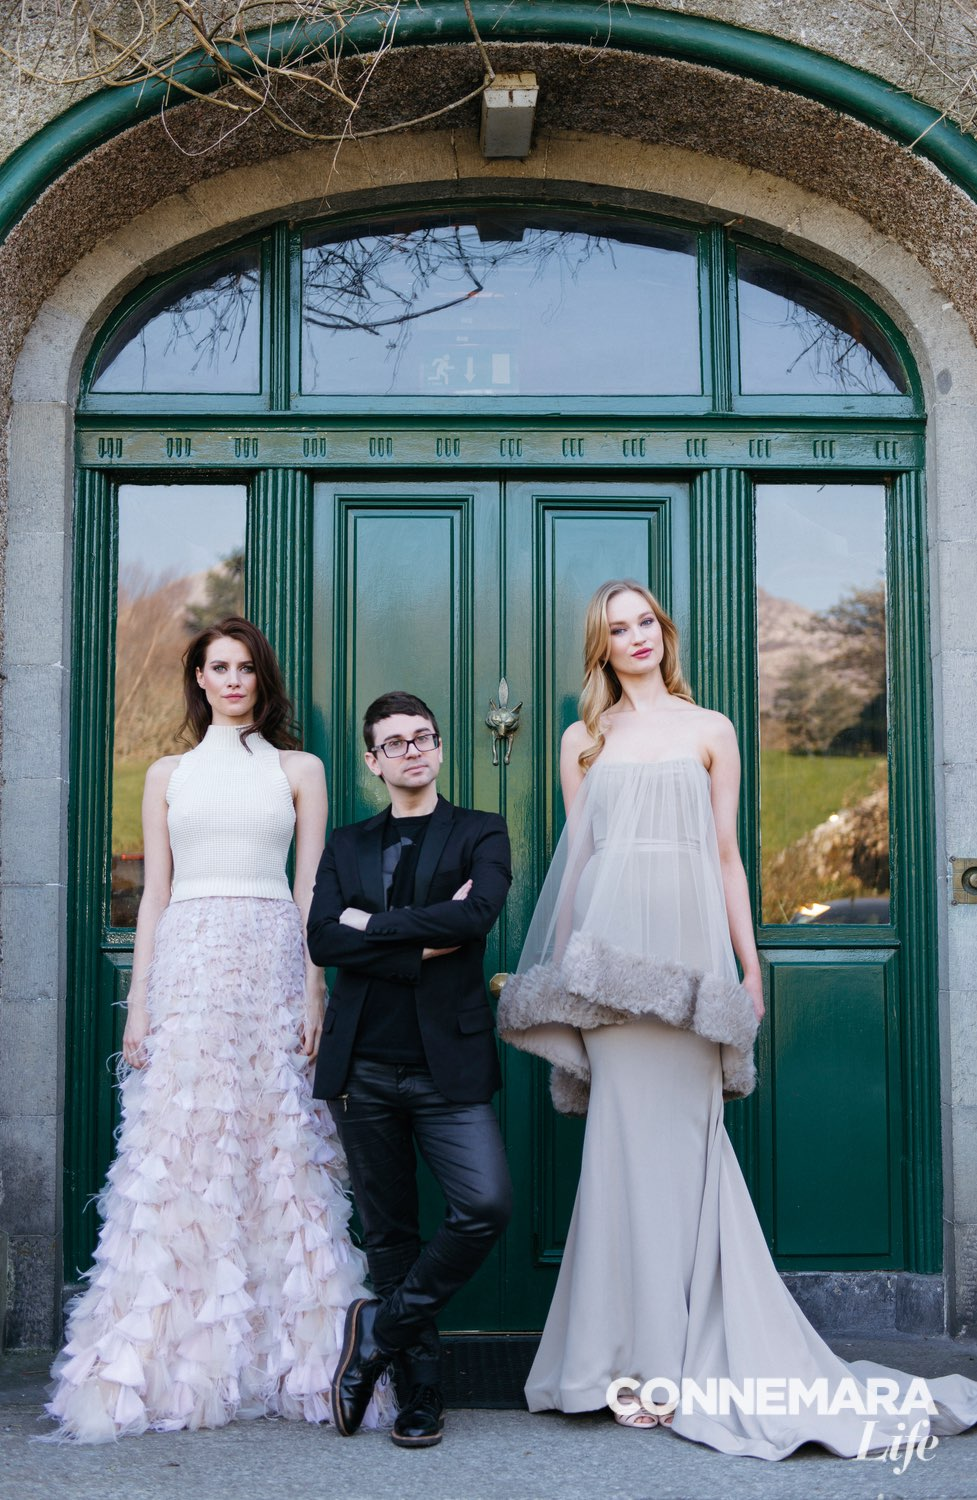 Models Faye Dinsmore and Clara McSweeney with designer Christian Siriano at Ballynahinch Castle entrance